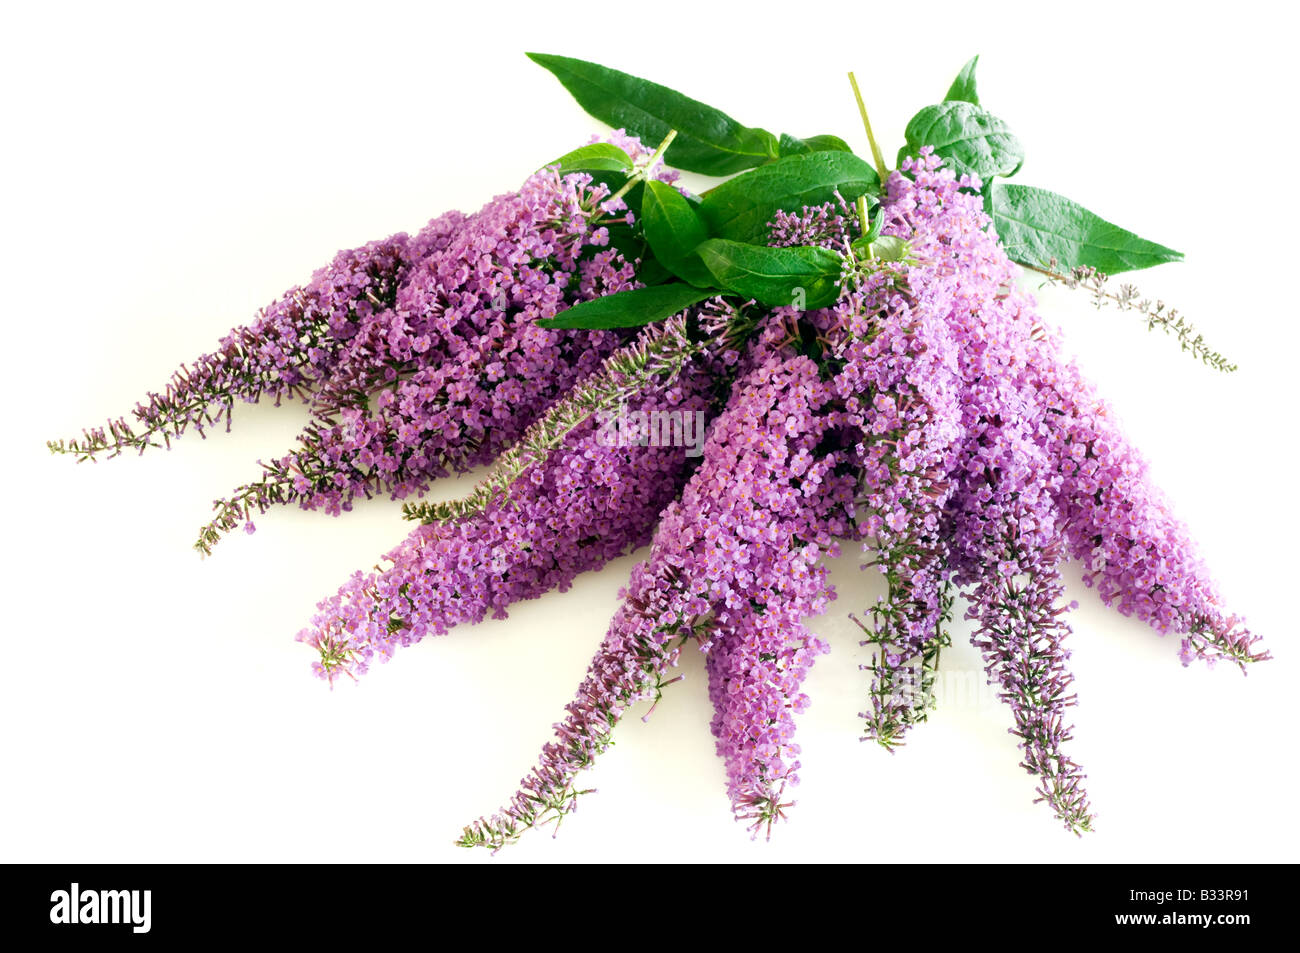 Bunch of mauve Budlea flowers and leaves - Stock Image